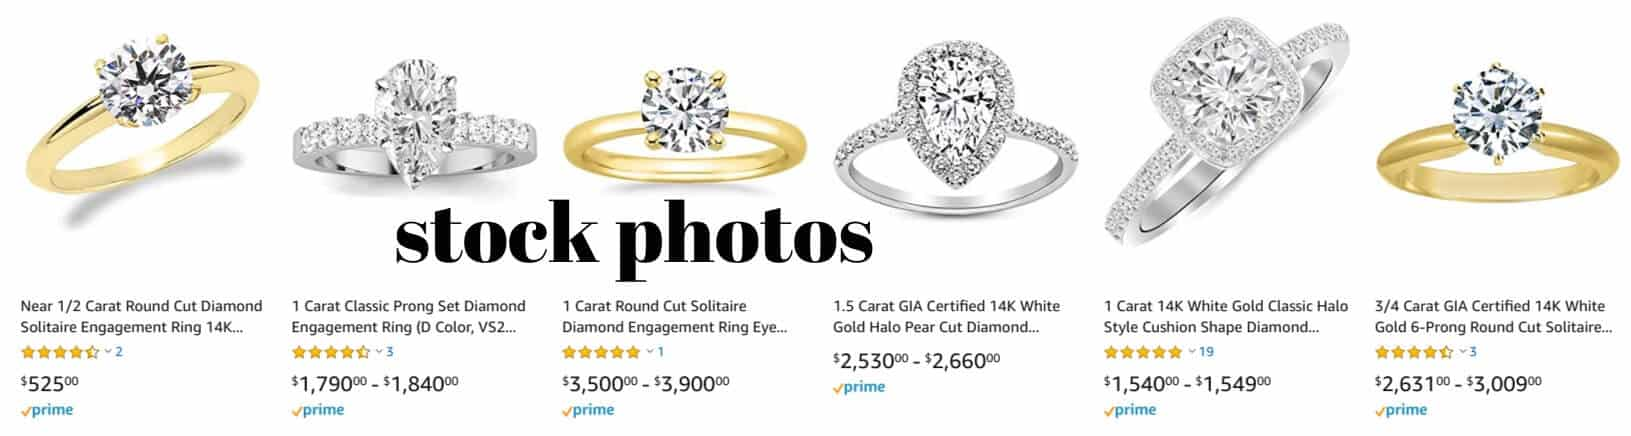 stock photos of diamond engagement rings sold on Amazon